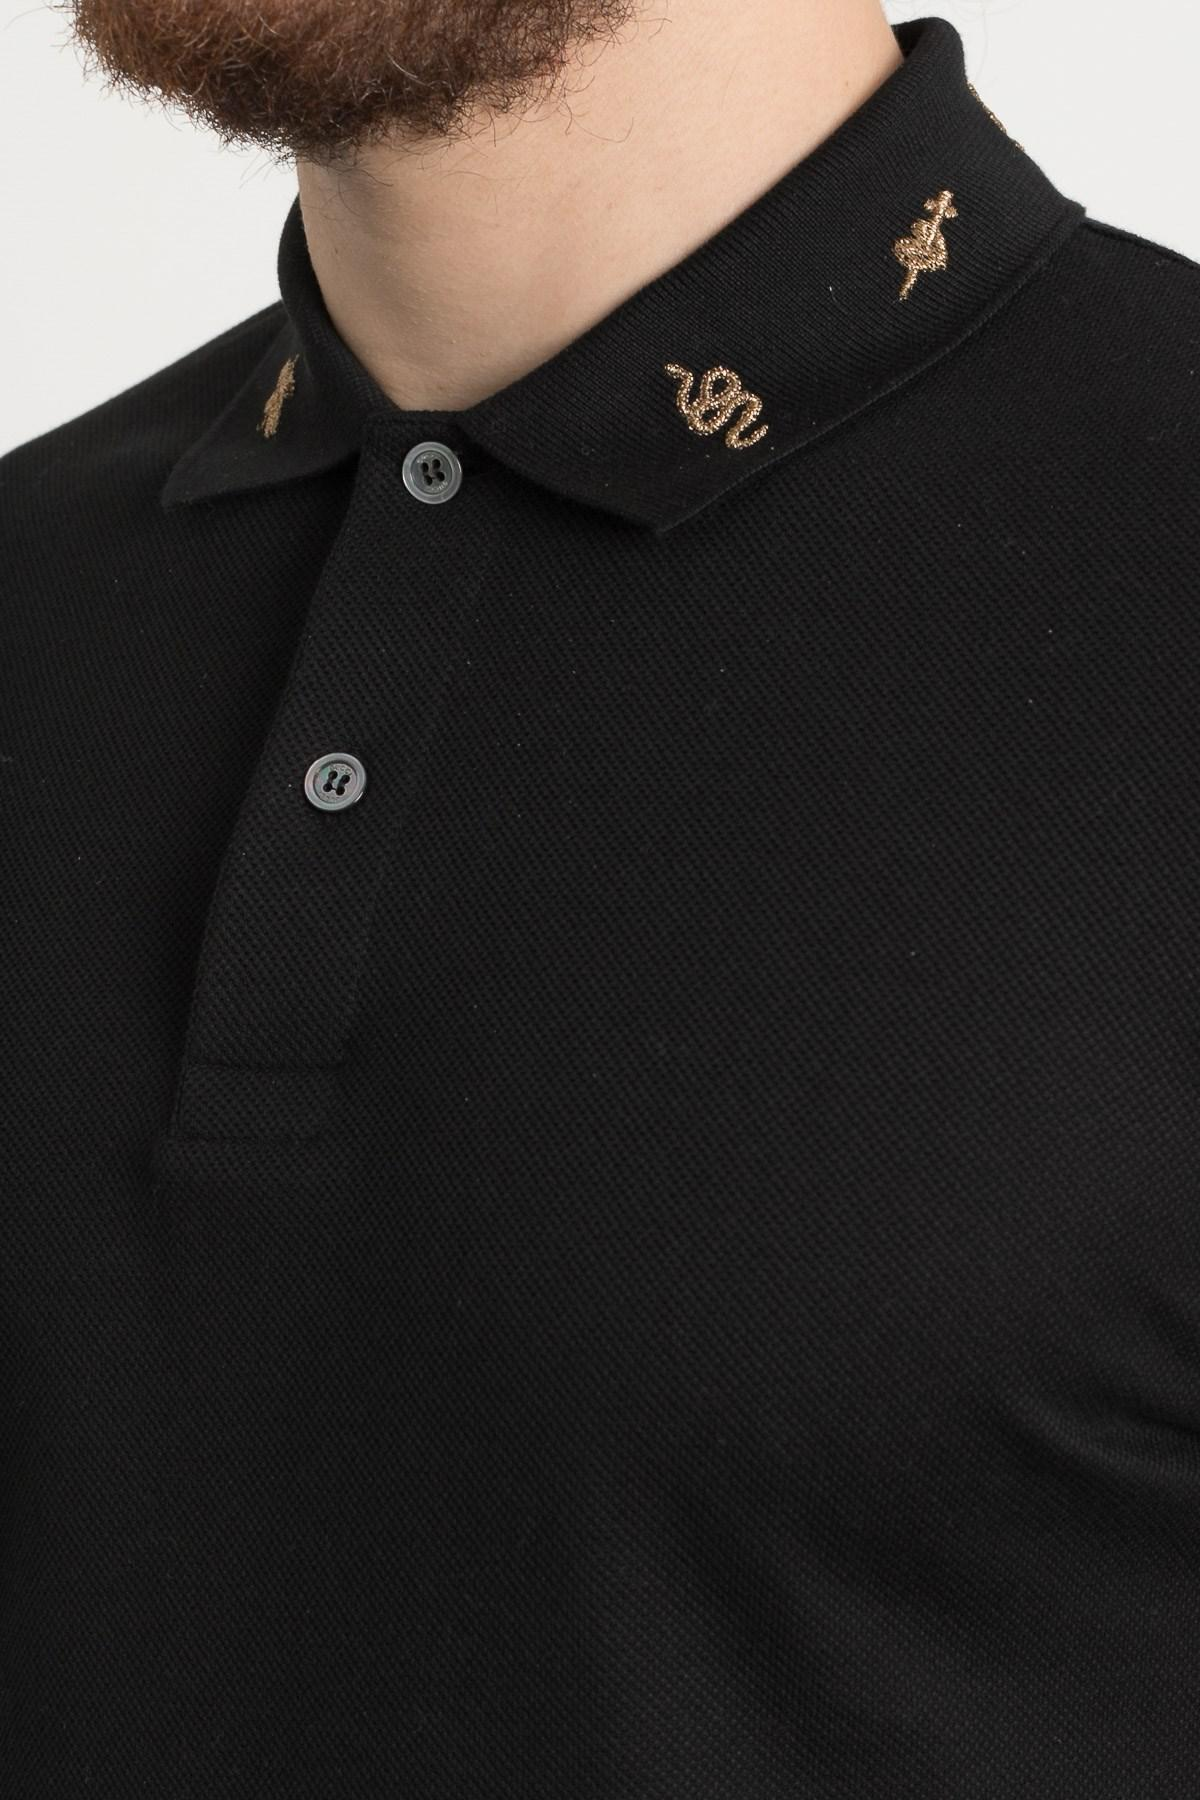 274bb0733 Gucci Embroidered Collar Polo Shirt in Black for Men - Lyst